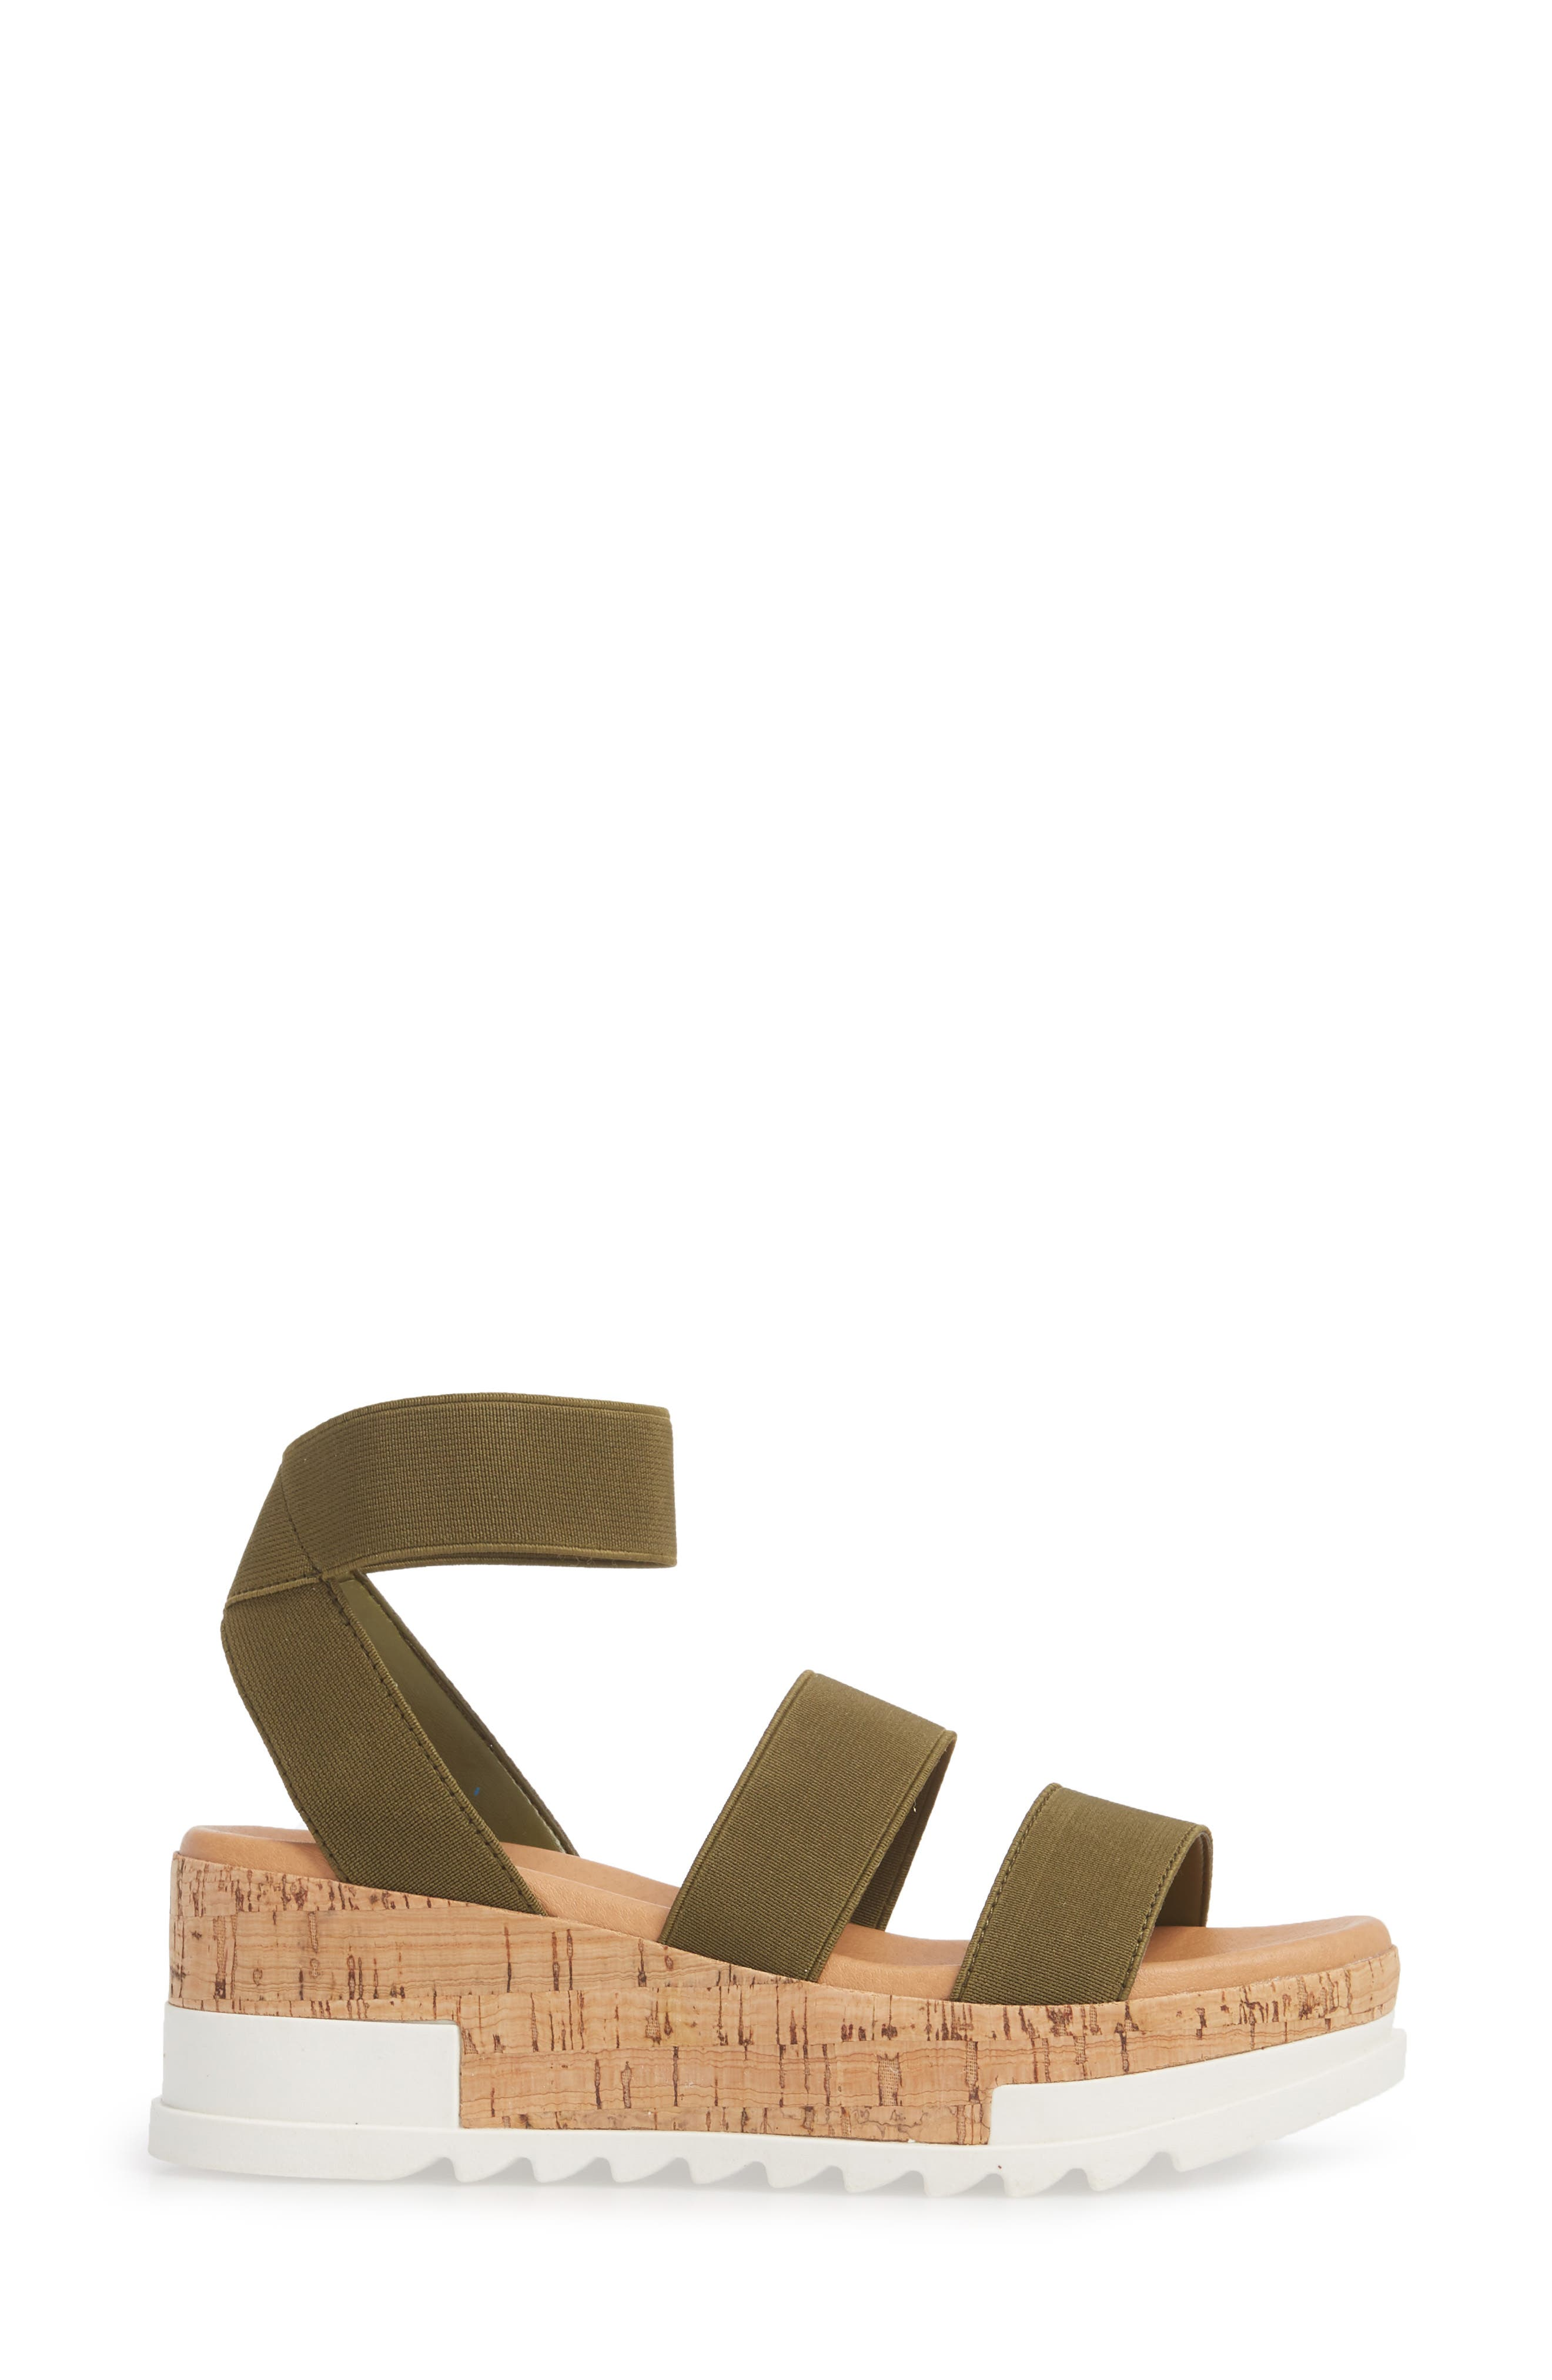 STEVE MADDEN, Bandi Platform Wedge Sandal, Alternate thumbnail 3, color, OLIVE